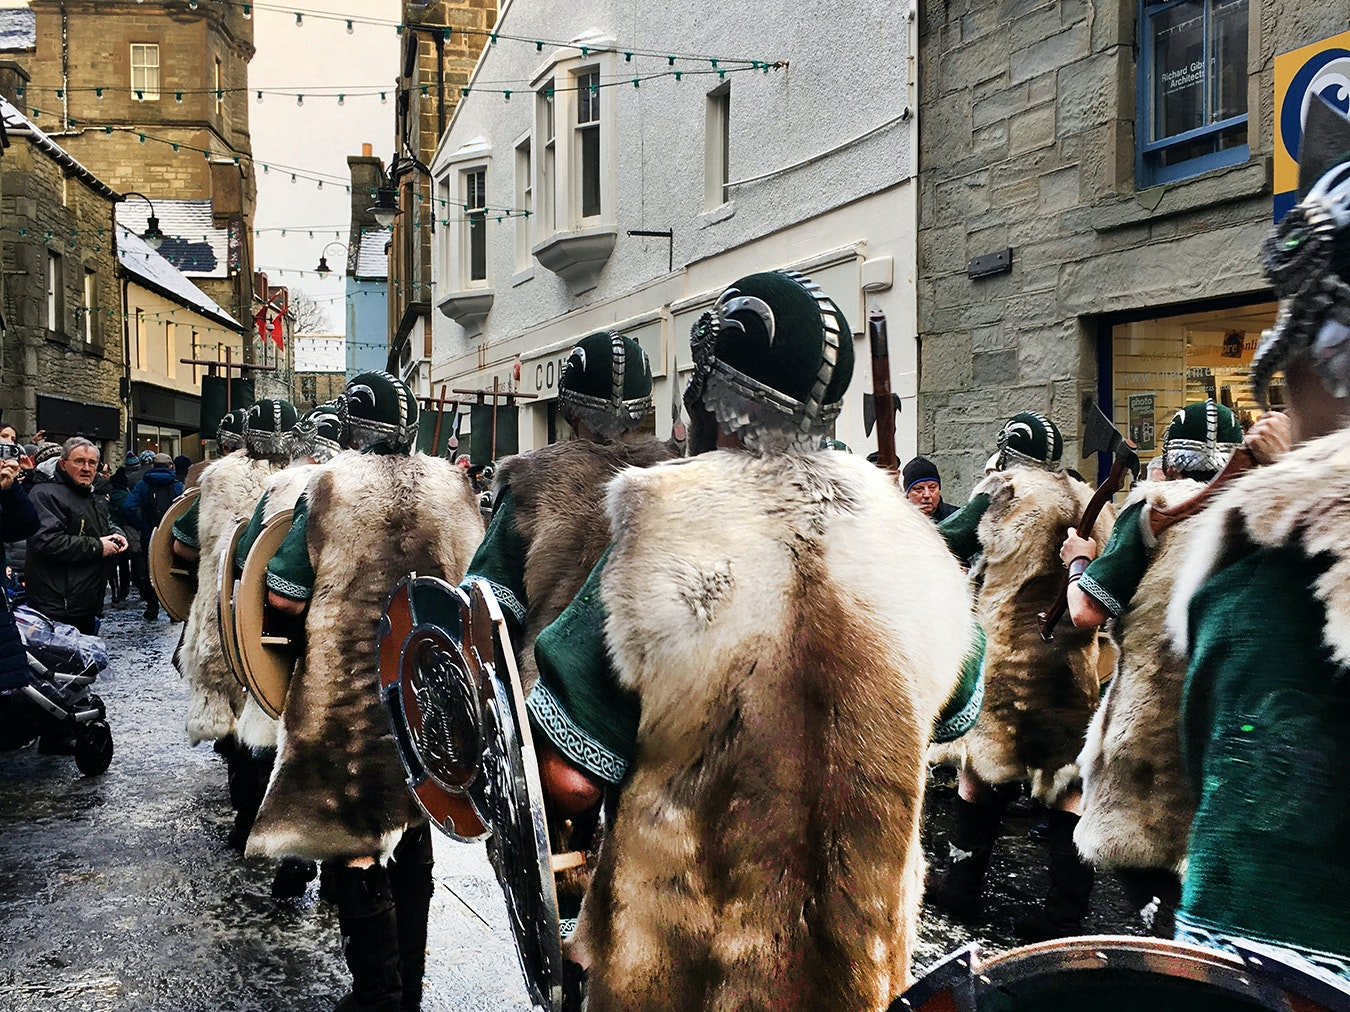 Viking-style armor is designed as far as two years in advance of the festival.